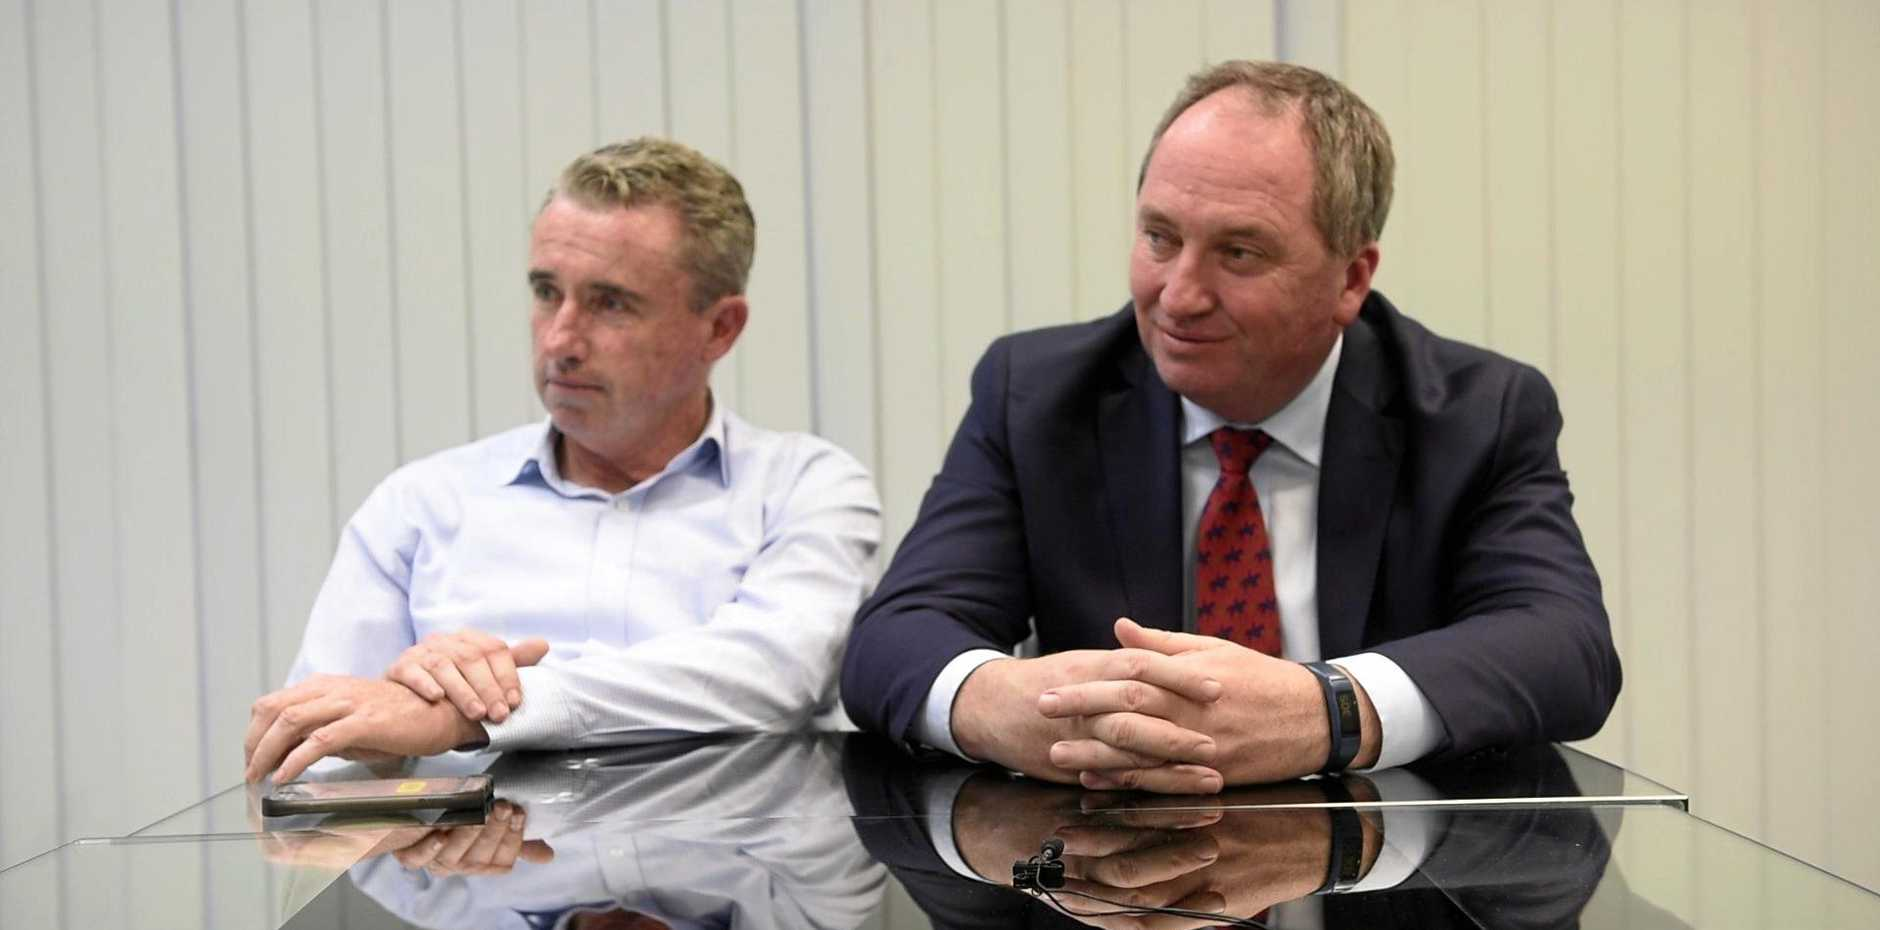 UP IN AIR: Member for Page Kevin Hogan with Barnaby Joyce.